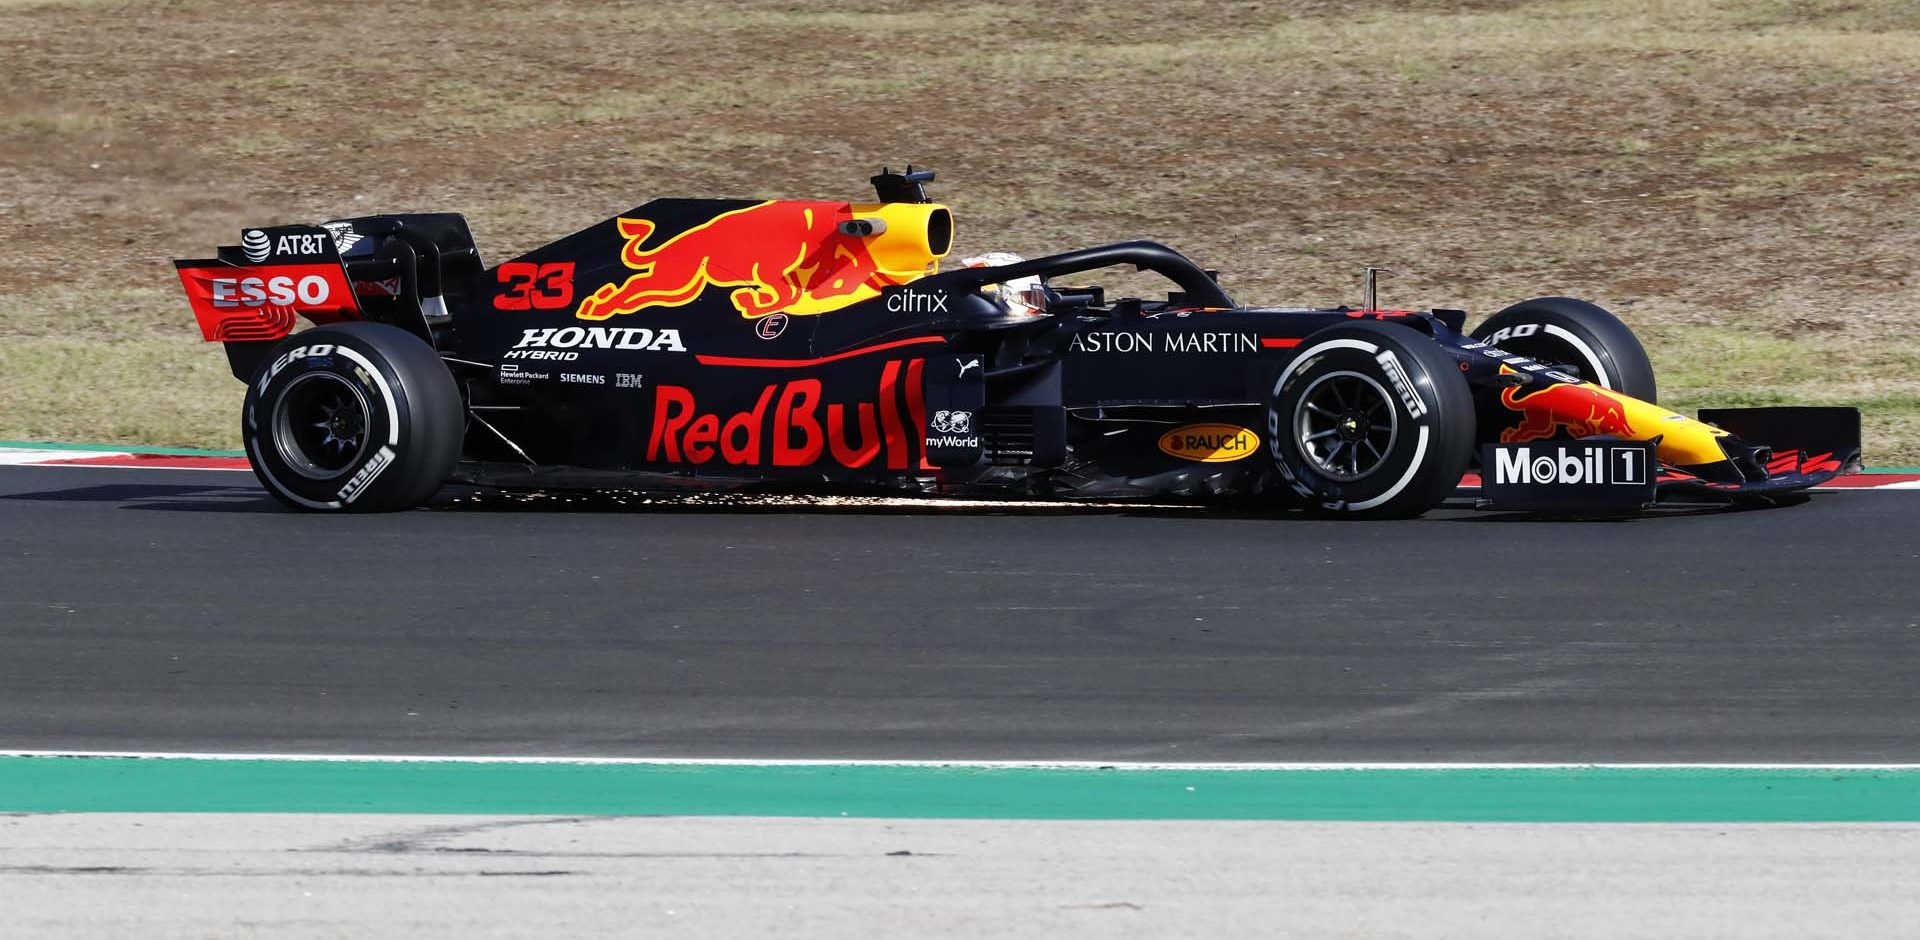 PORTIMAO, PORTUGAL - OCTOBER 23: Max Verstappen of the Netherlands driving the (33) Aston Martin Red Bull Racing RB16 on track during practice ahead of the F1 Grand Prix of Portugal at Autodromo Internacional do Algarve on October 23, 2020 in Portimao, Portugal. (Photo by Armando Franca - Pool/Getty Images)